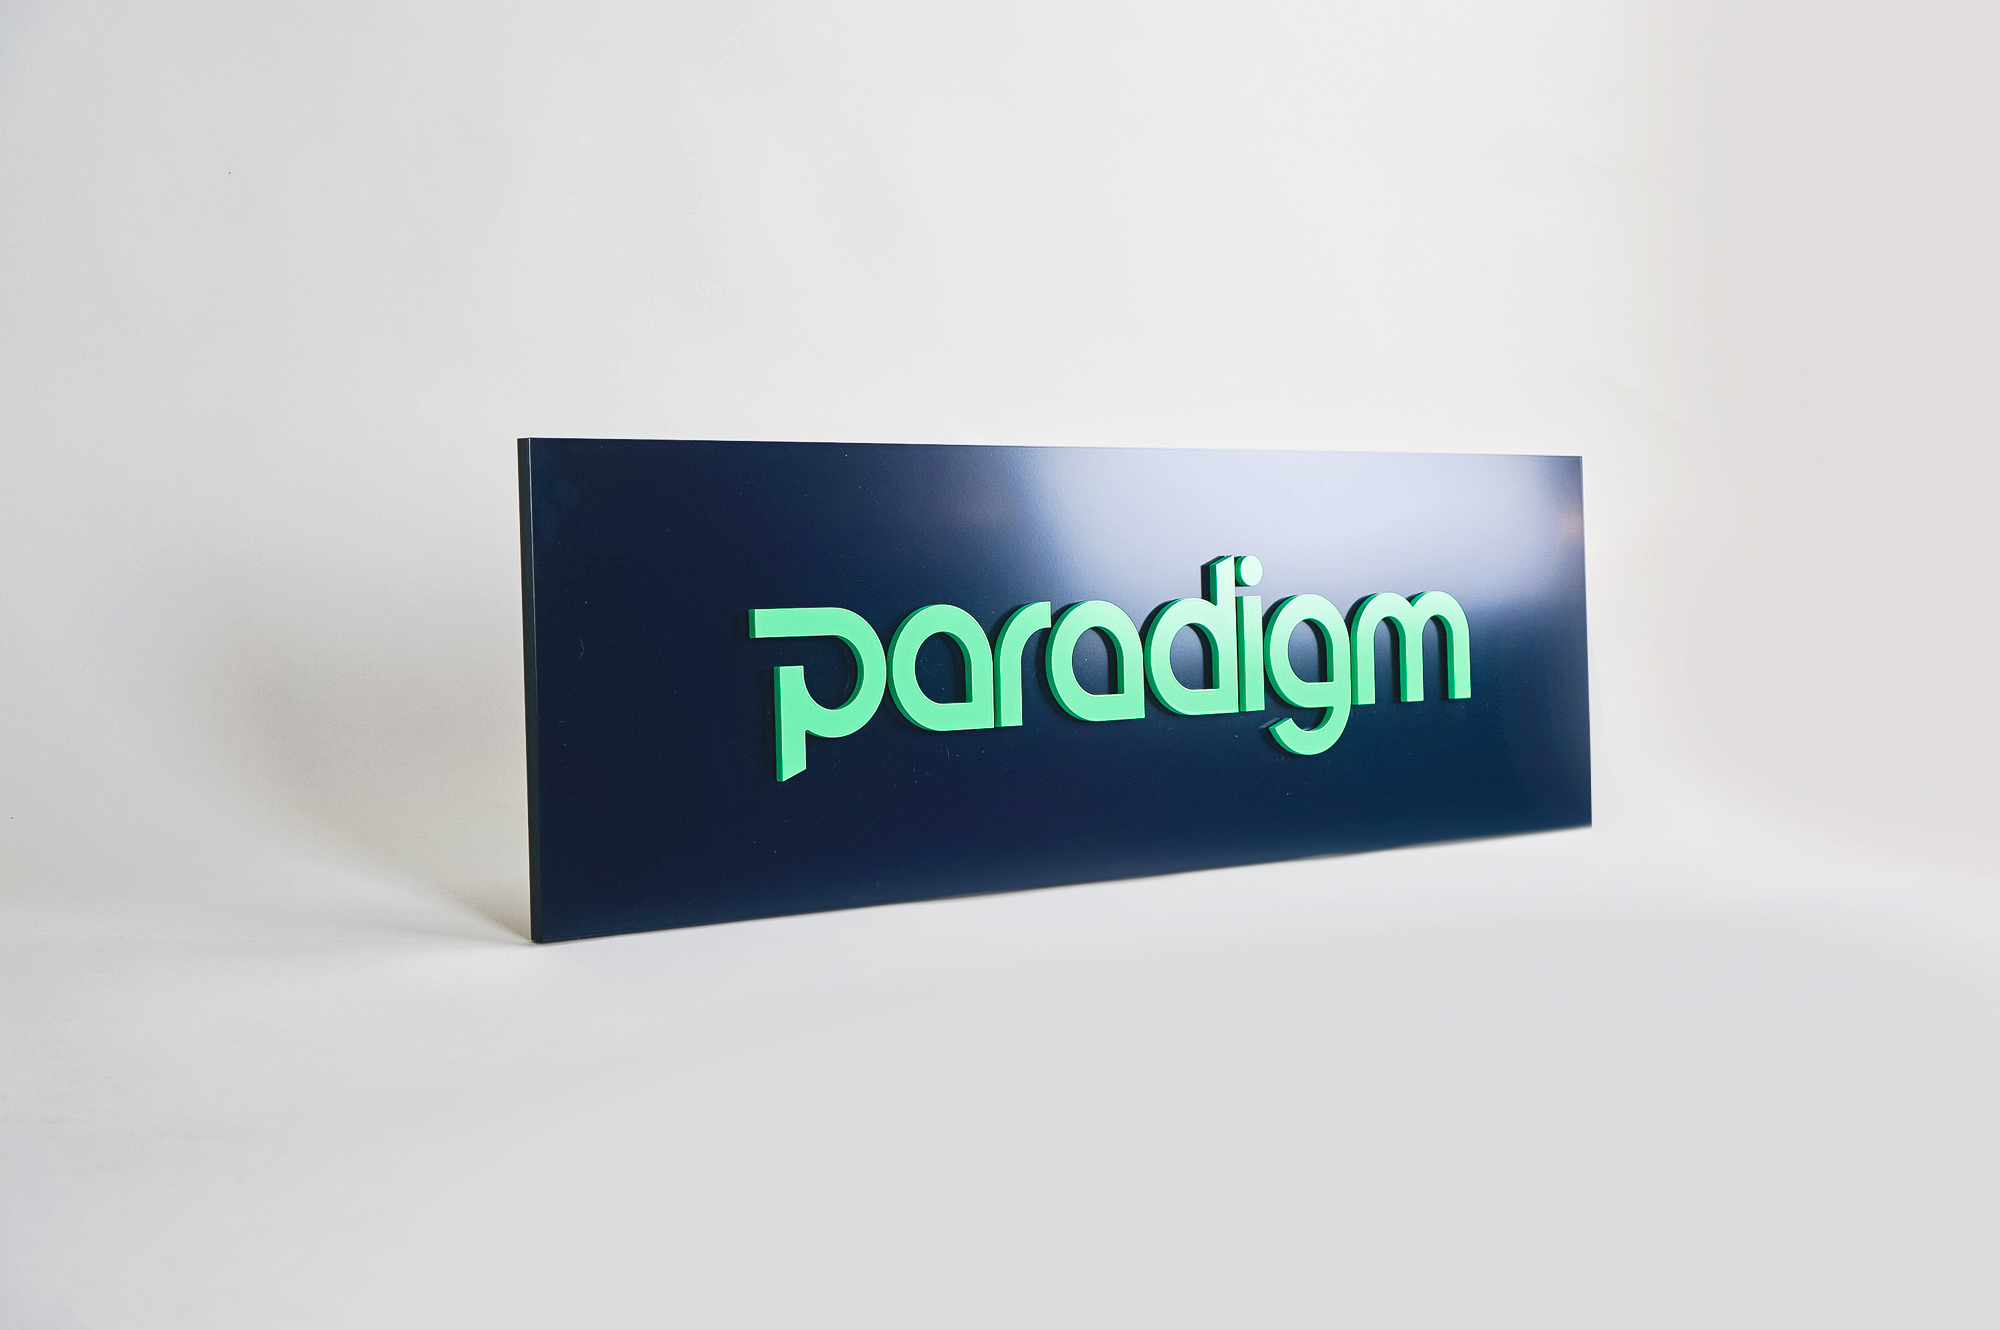 Green and navy, modern, raised text panel sign for Paradigm, a tech company currently located at WeWork in Oakland, CA.